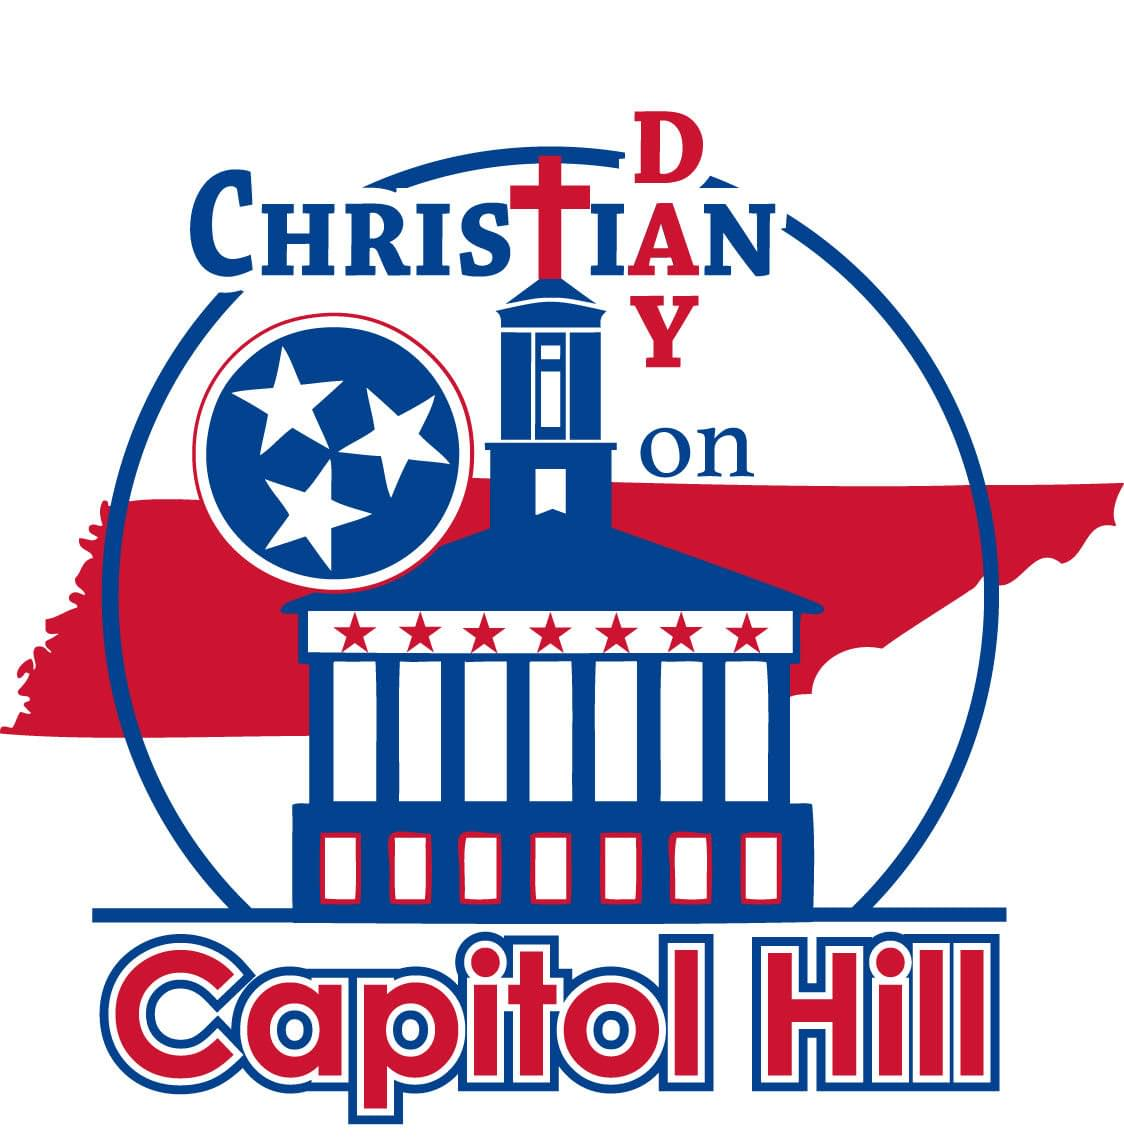 Christian Day on Capitol Hill